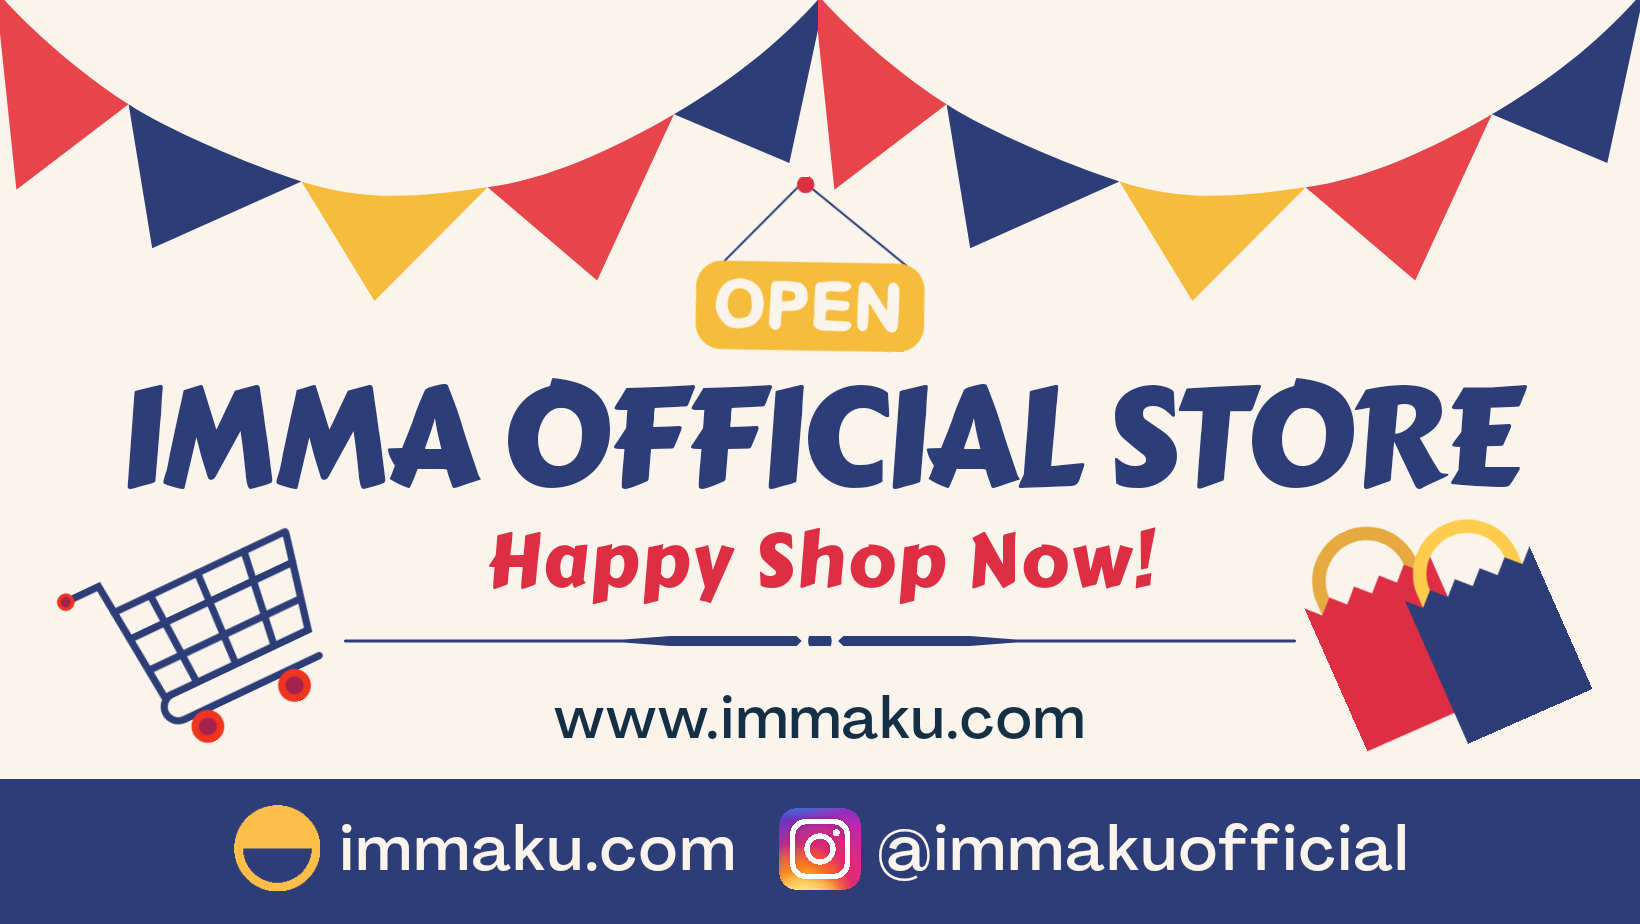 Imma Official Store